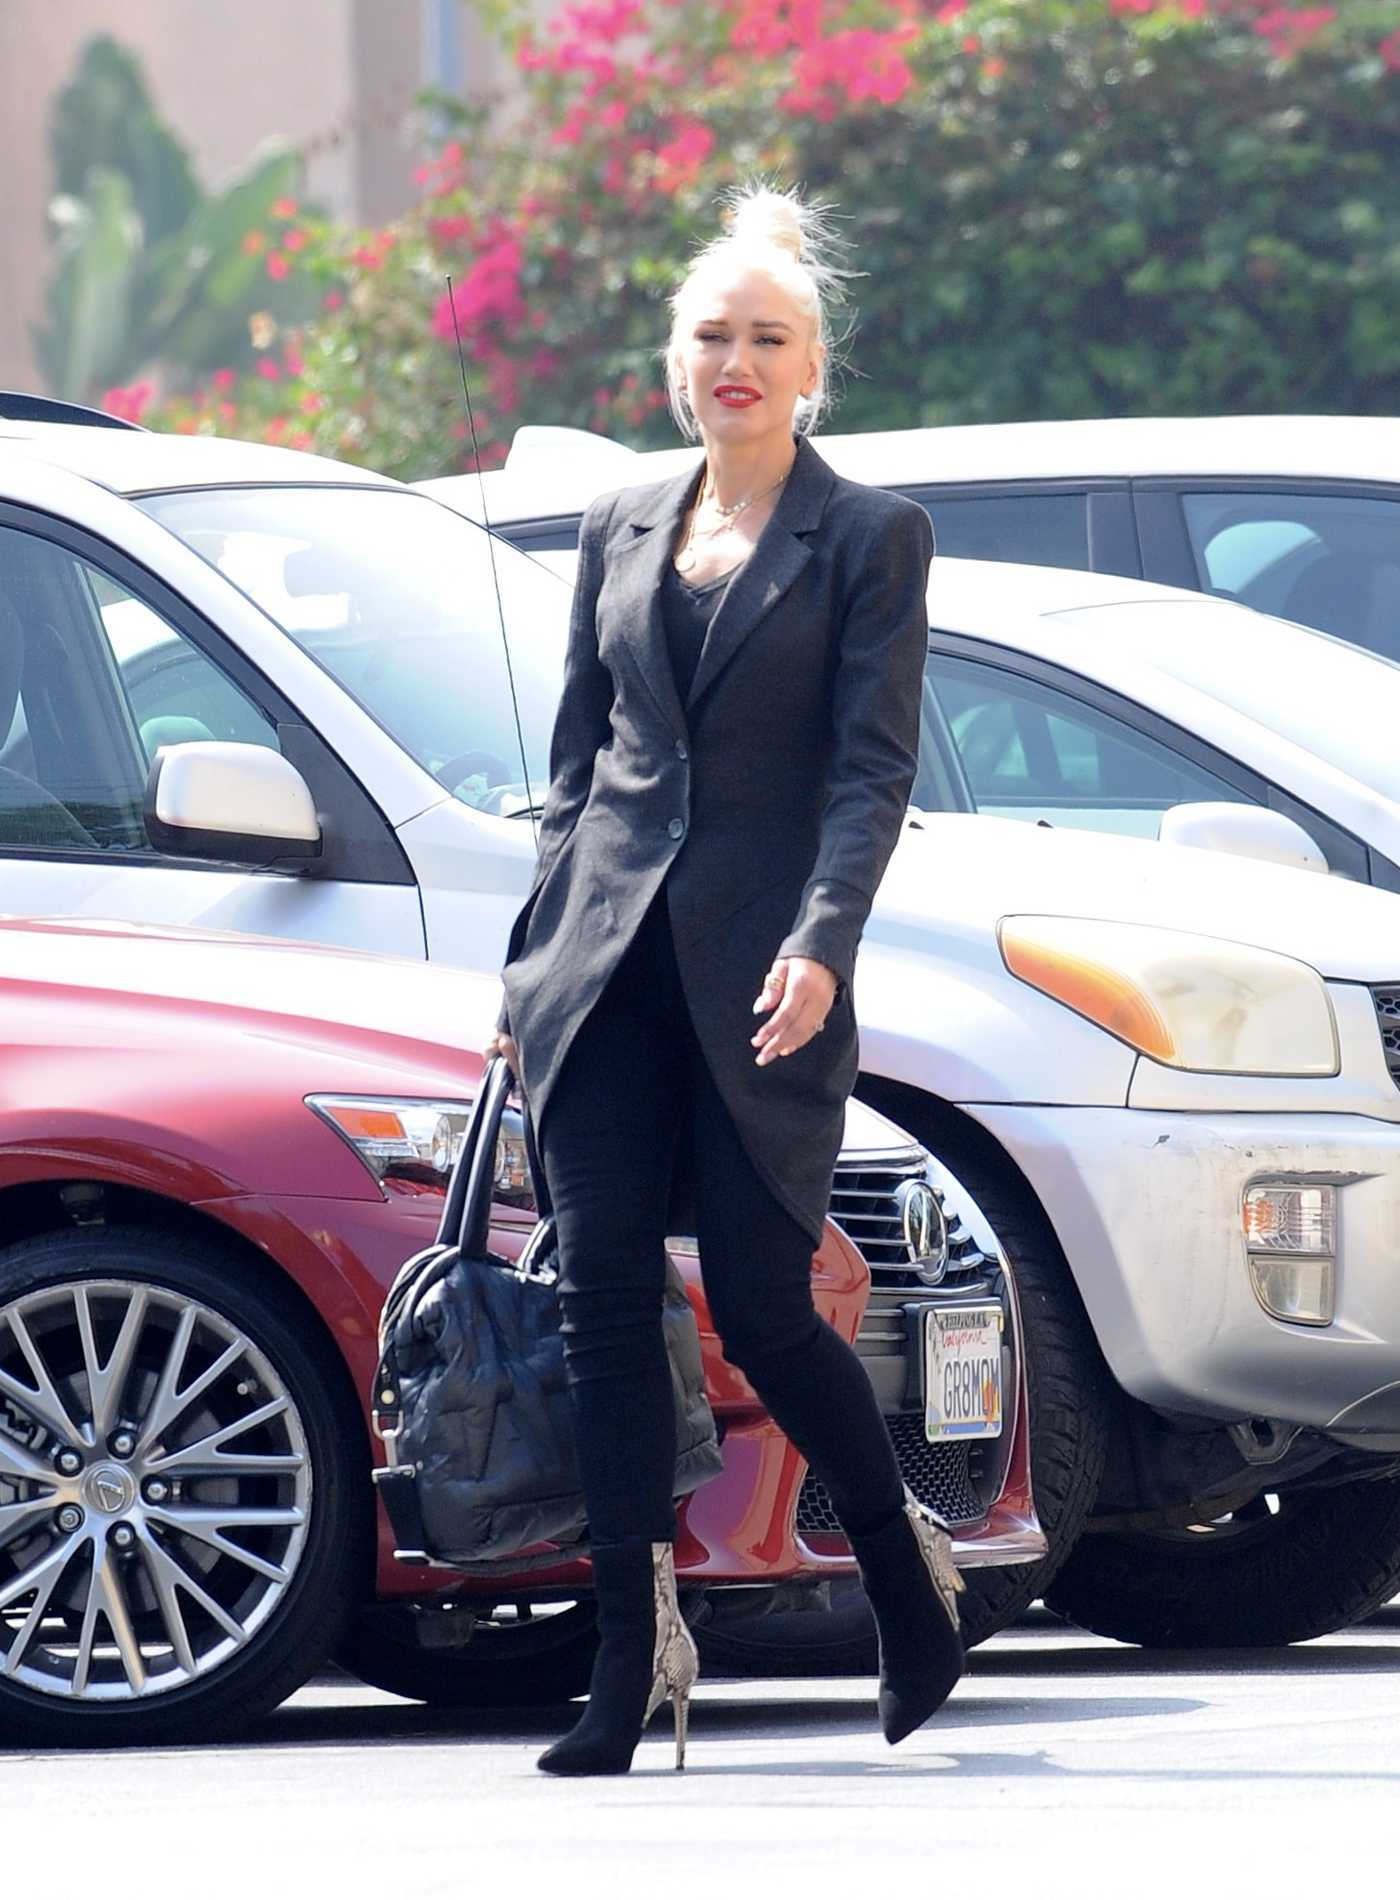 Gwen Stefani Attends Mass Service at St. Brendan Catholic Church in Los Angeles 08/26/2018